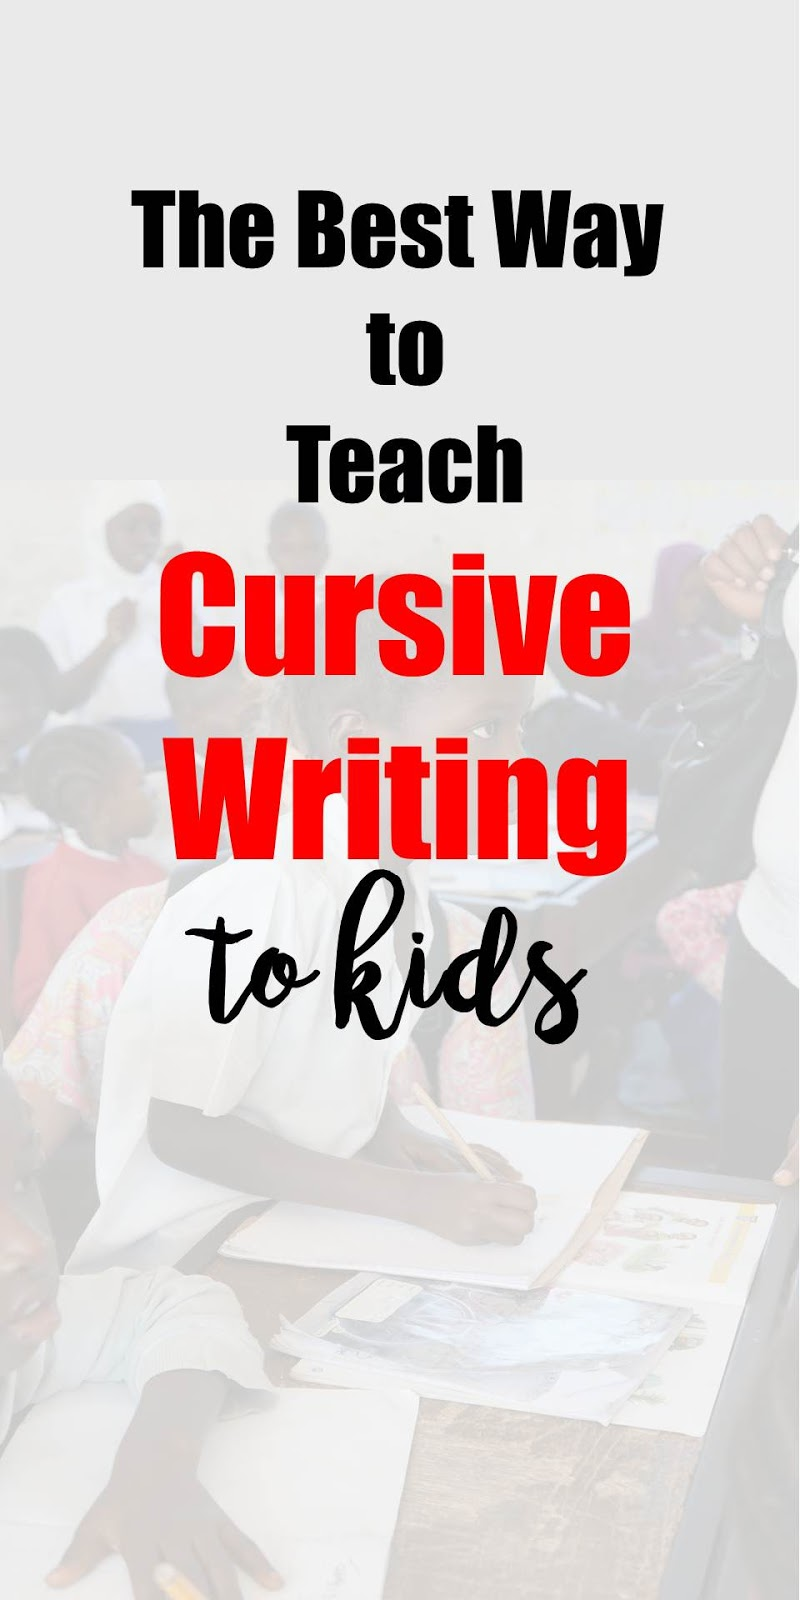 The Best Way to Teach Cursive Writing to Kids